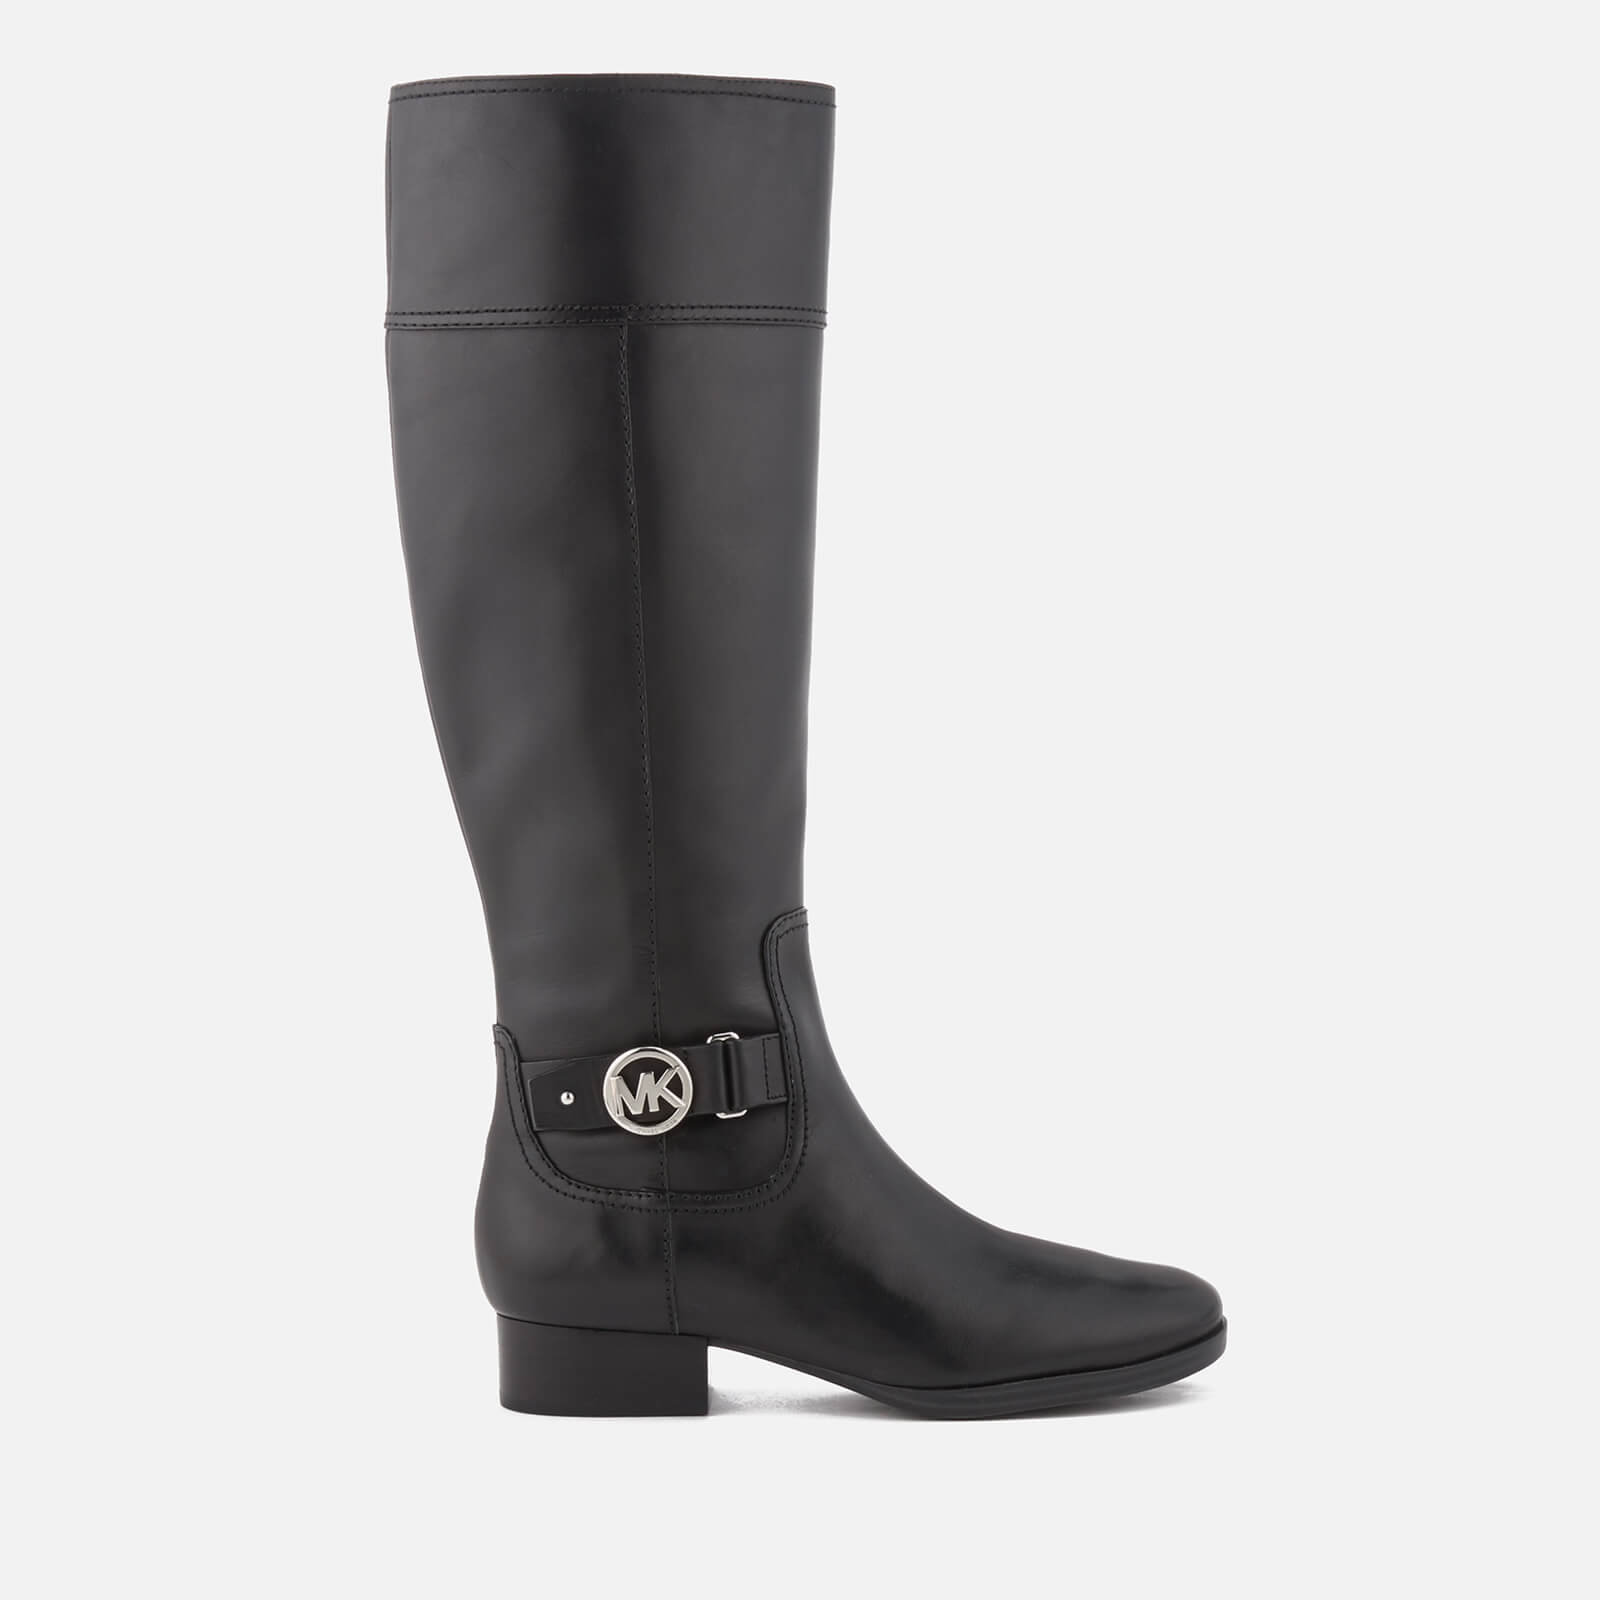 05931de3a384 MICHAEL MICHAEL KORS Women s Harland Leather Knee High Boots - Black ...